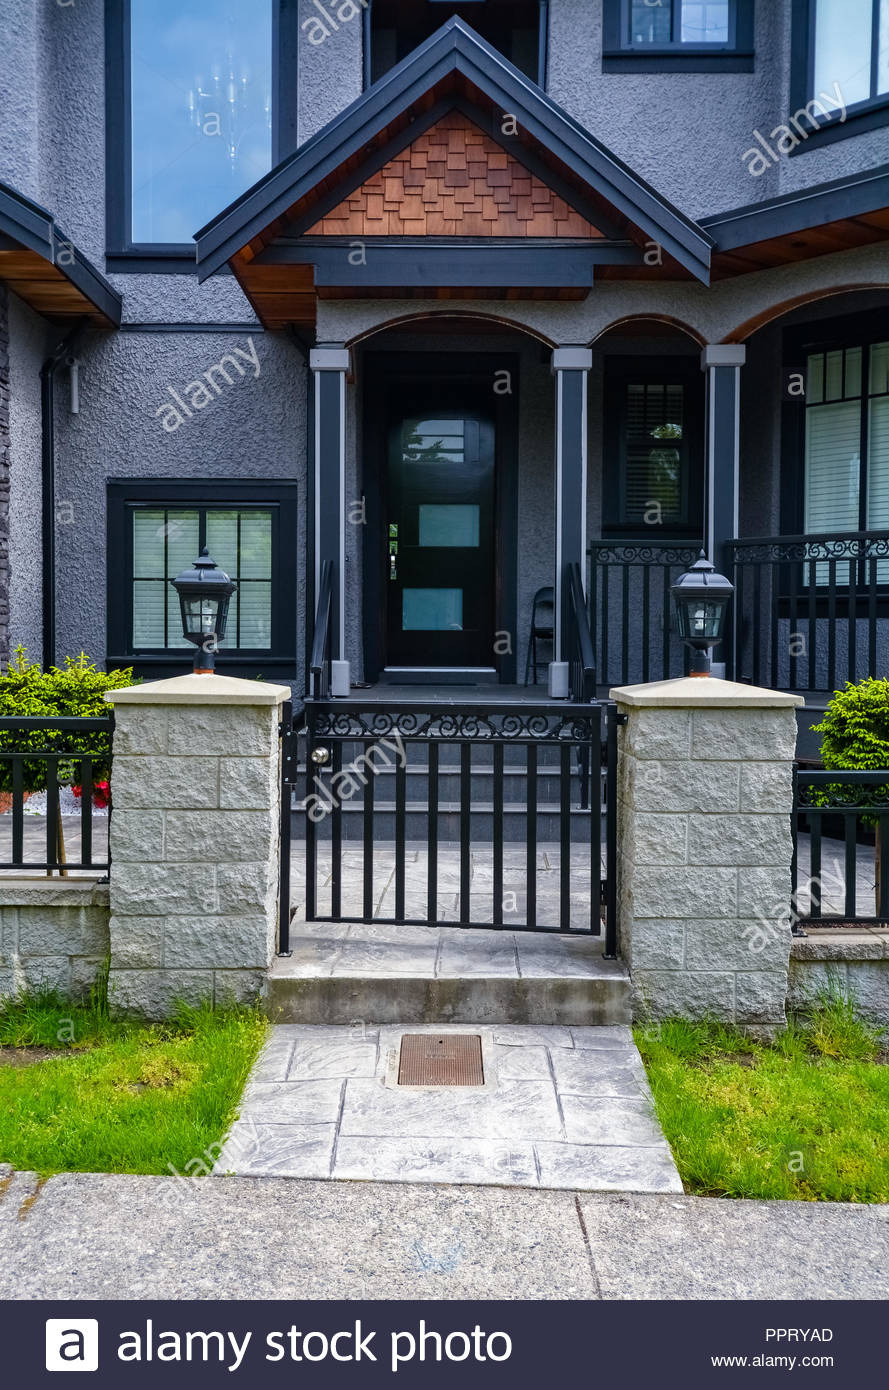 entrance of residential house with metal grid gate in front dark colored house with entrance gate PPRYAD